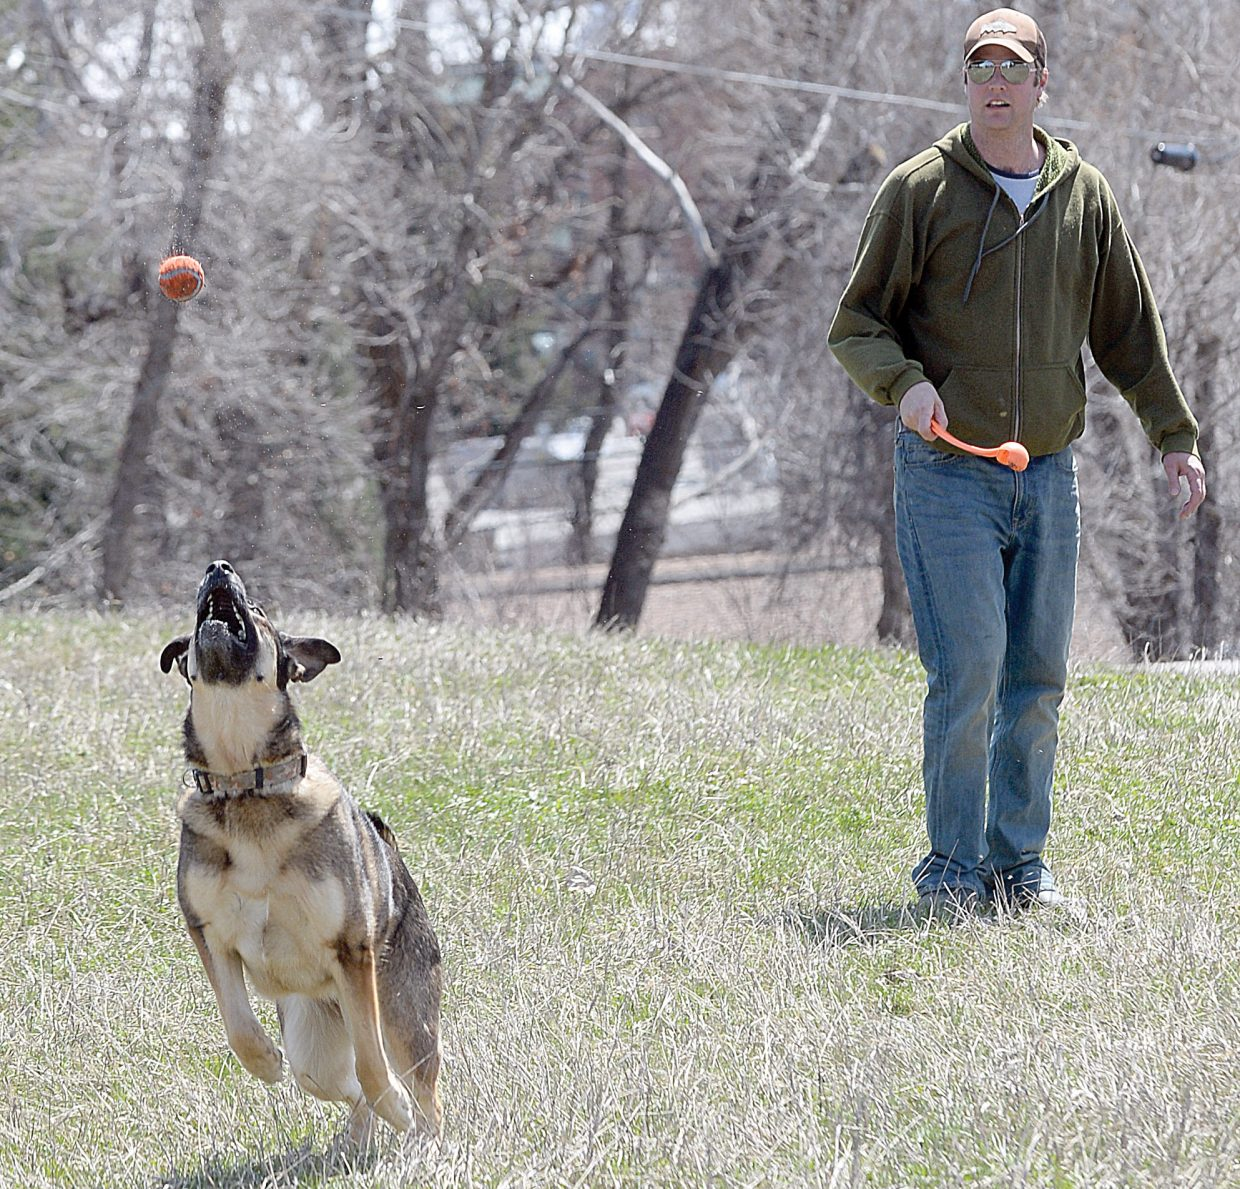 Kona the dog chases after a tennis ball thrown by Joe Belcher while playing in the Triangle area in downtown Steamboat Springs on Thursday afternoon.